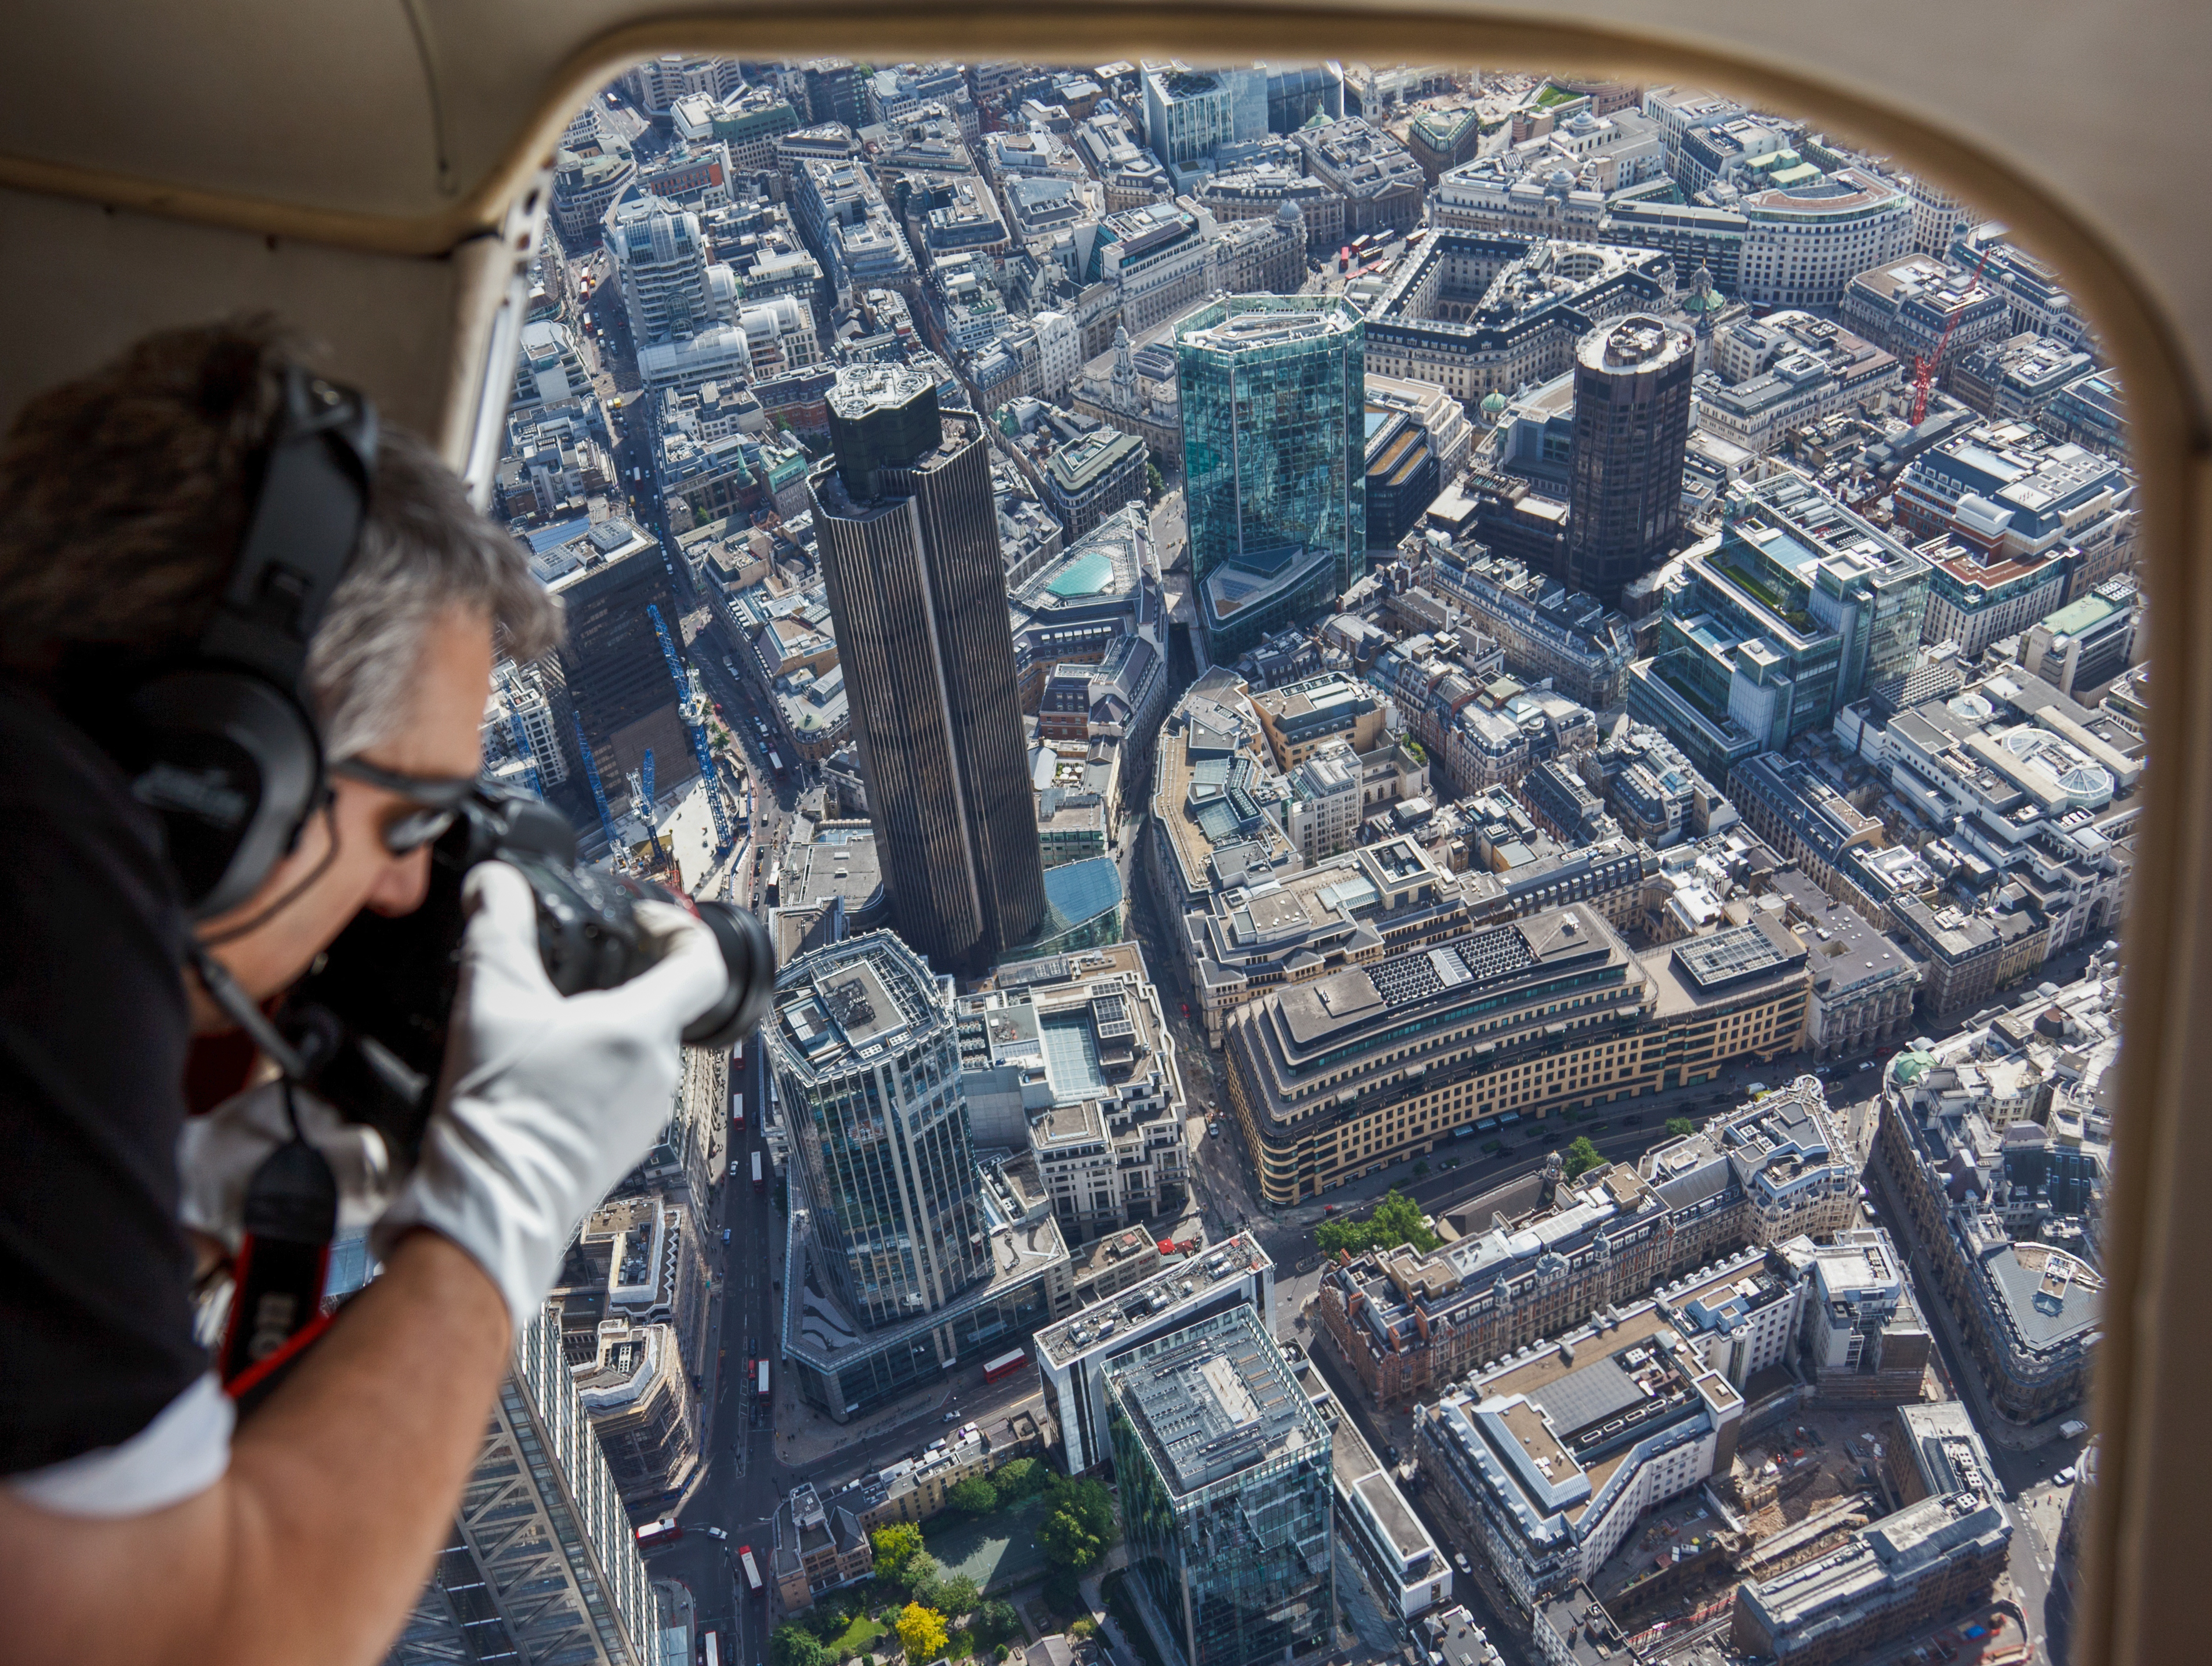 HIgh-Level-Photography_-Aerial-Photography-London Why use a professional photographer?